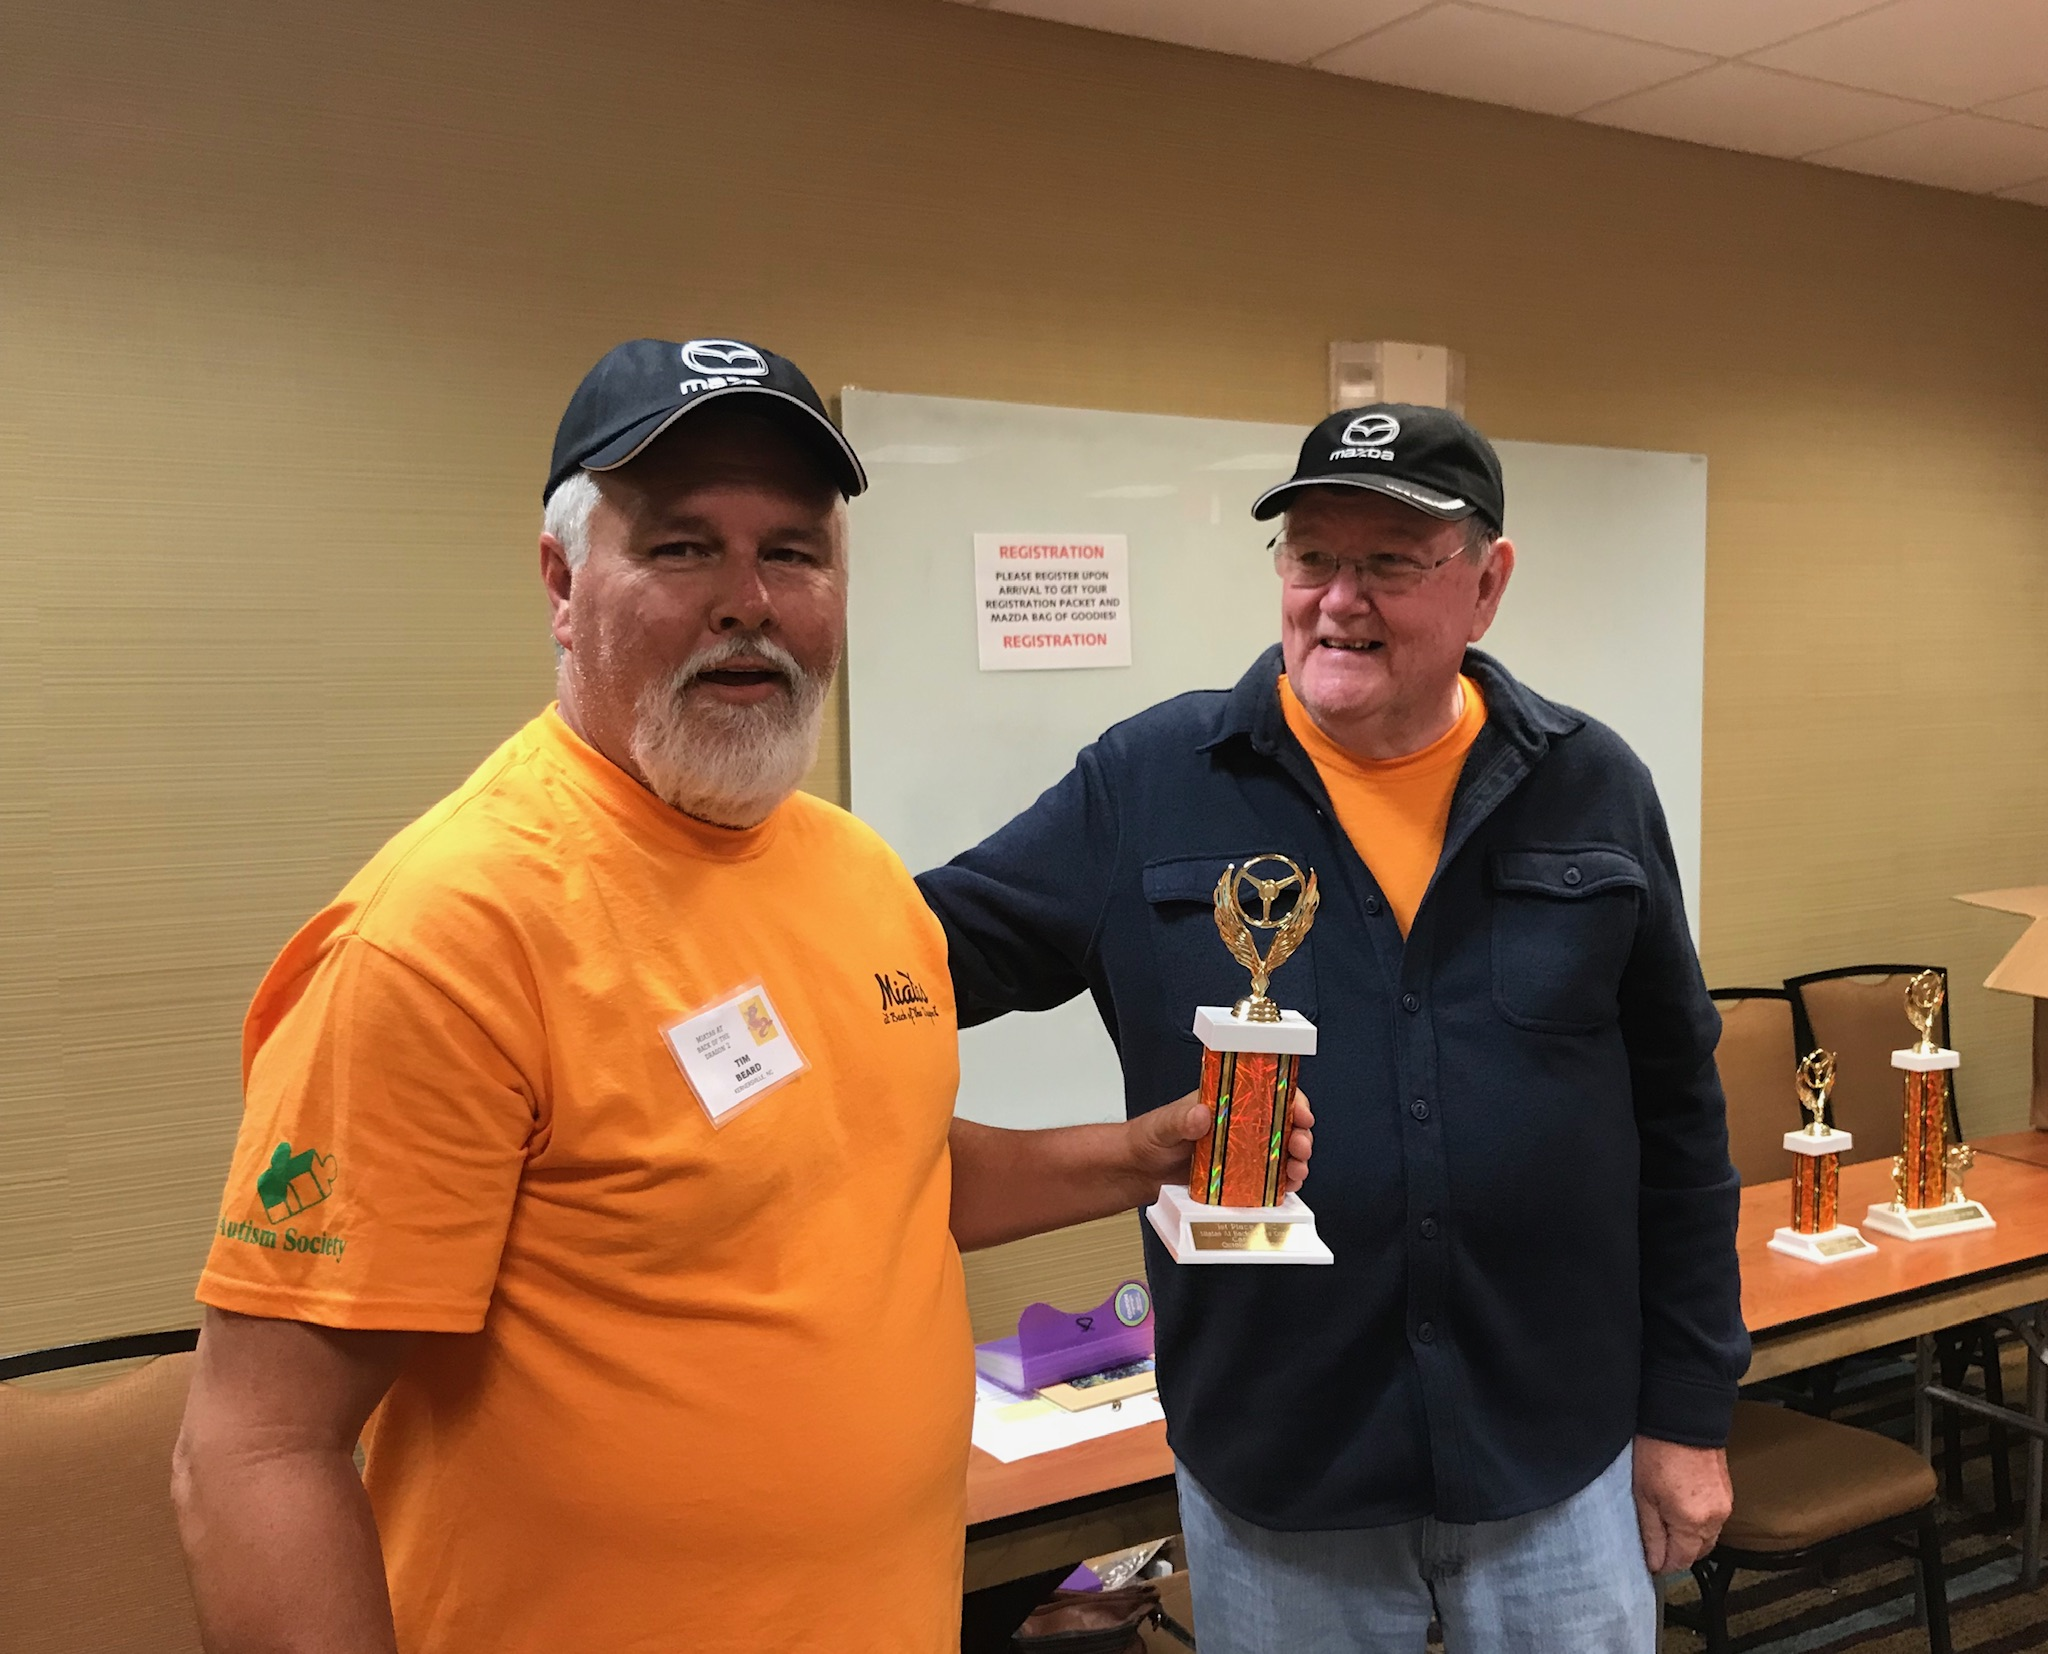 Jim presented 1st Place - NC division trophy to Tim Beard.